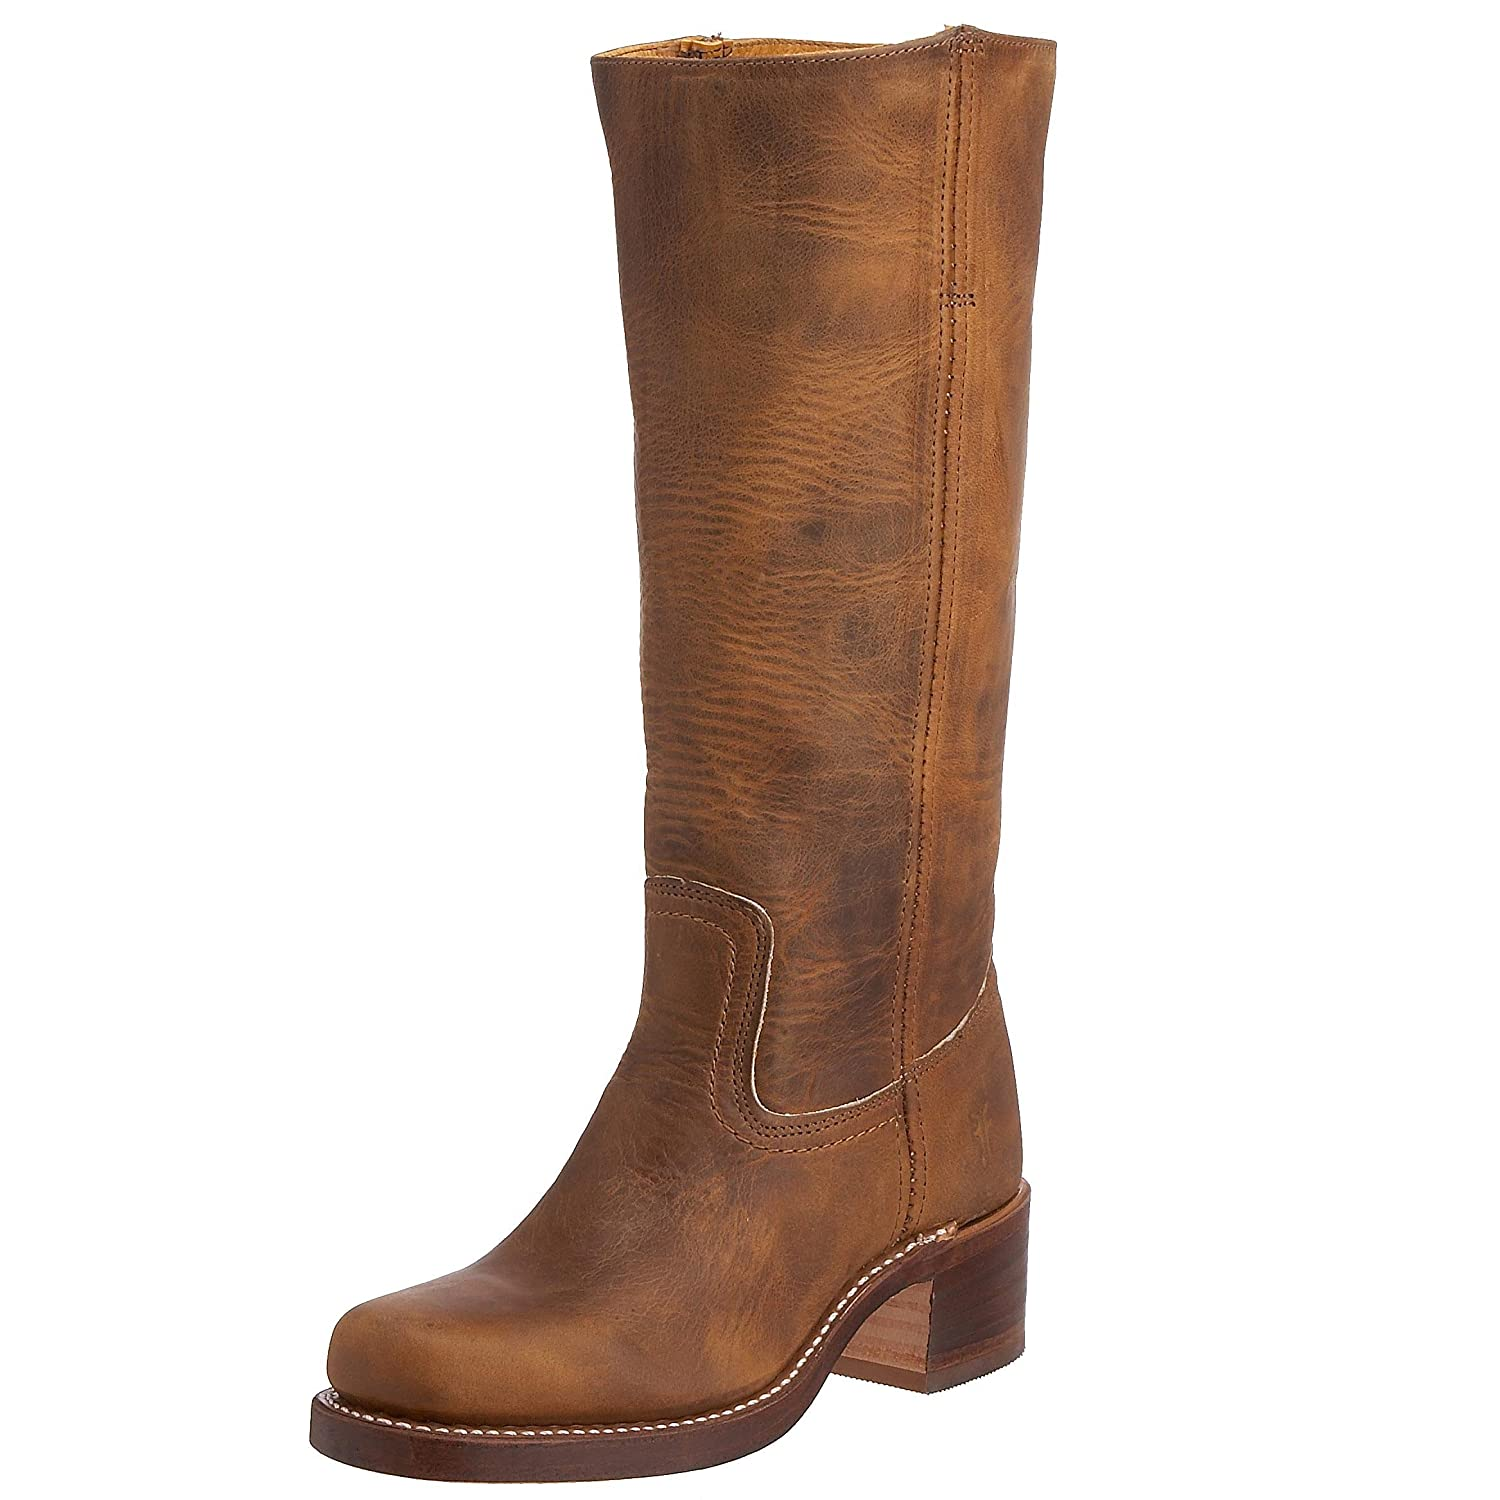 FRYE Women's Campus 14L Boot B000AK1FXG 9.5 B(M) US|Dark Brown-77050